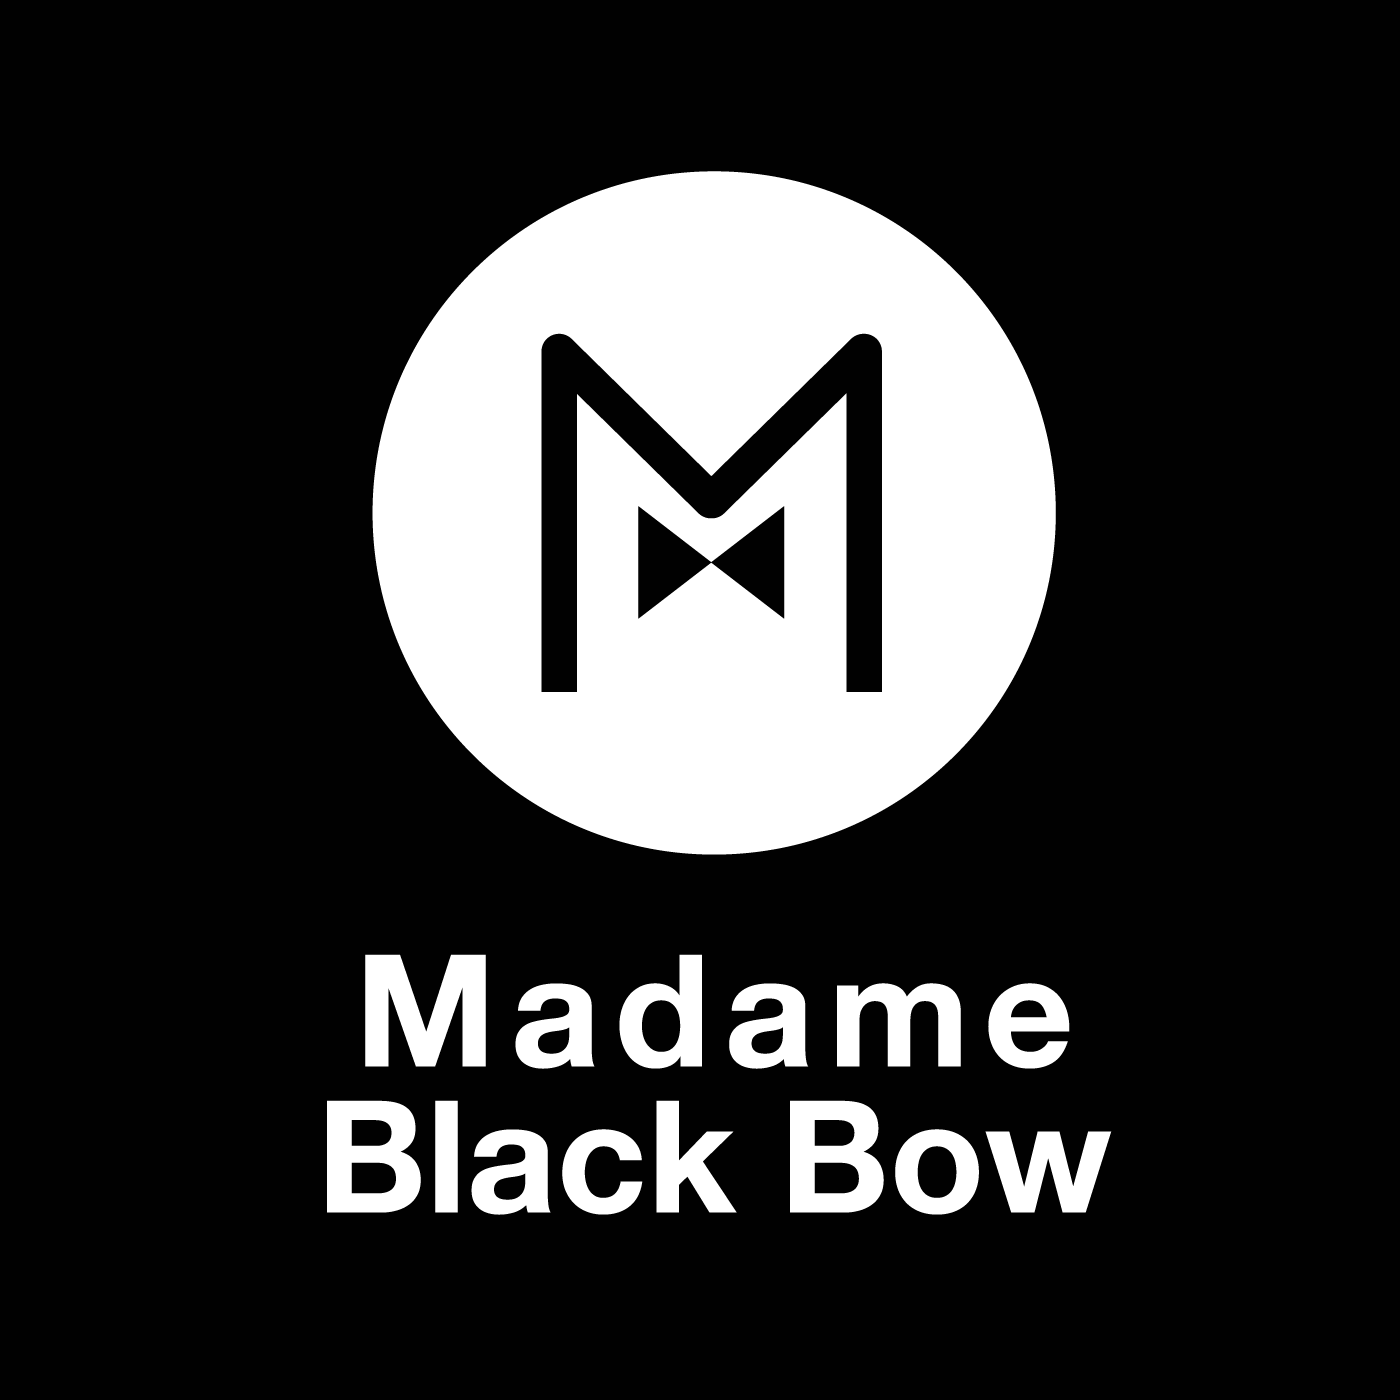 Madame Black Bow Productions